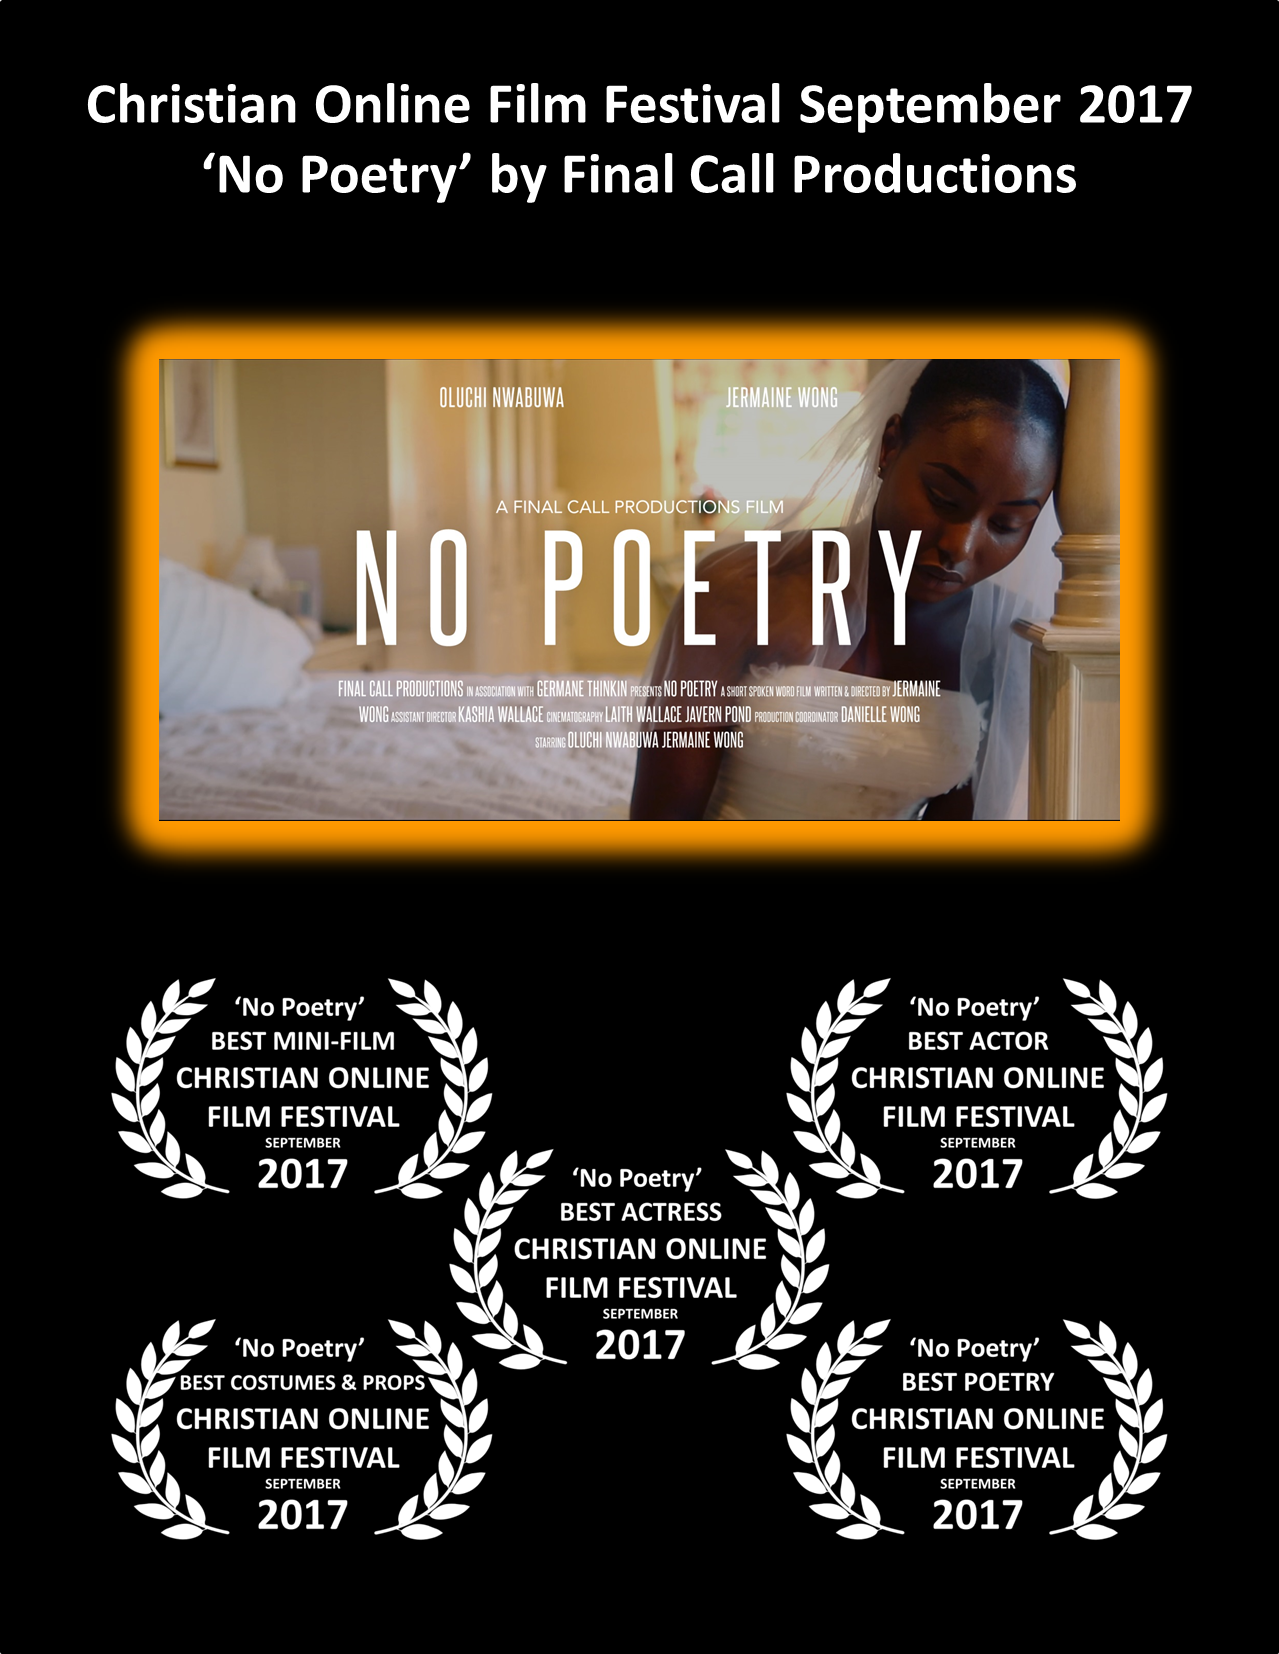 No Poetry Award Poster Sep 17 COLFF v2.png